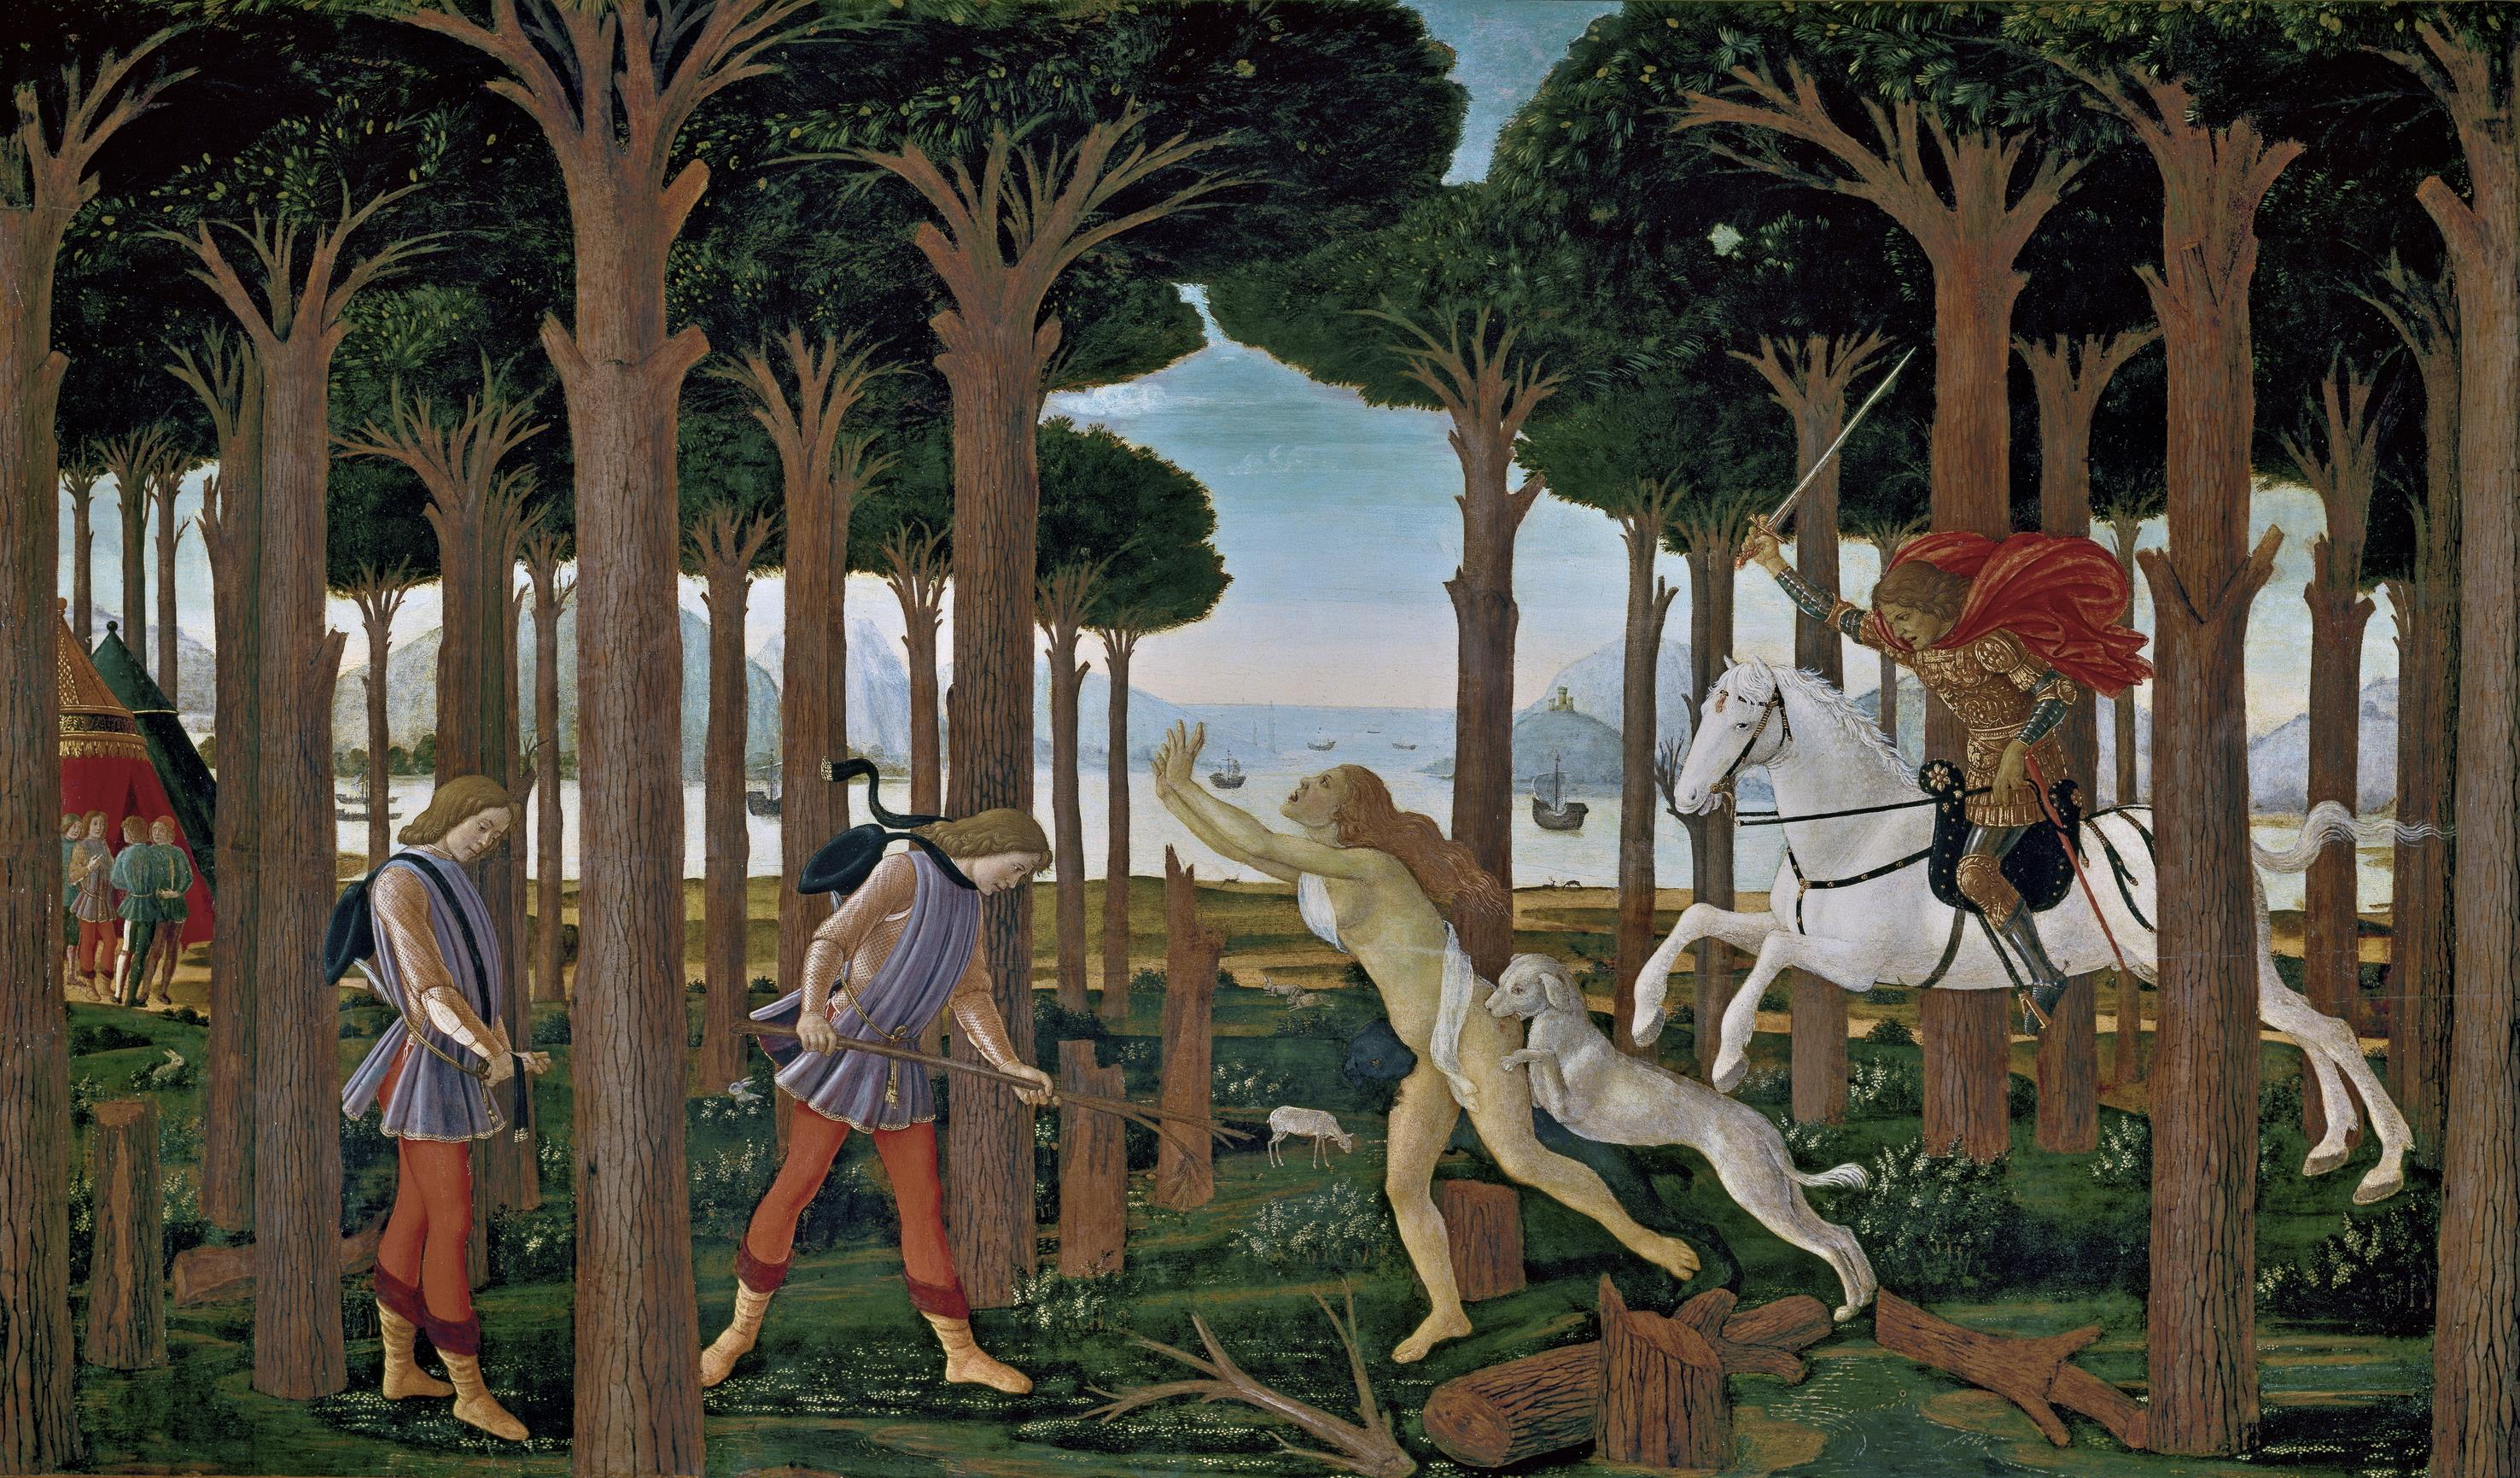 botticellis influence on later painters Sandro botticelli: sandro botticelli  and his influence is evident even in his pupil's late works  painting on poplar wood by sandro botticelli, .